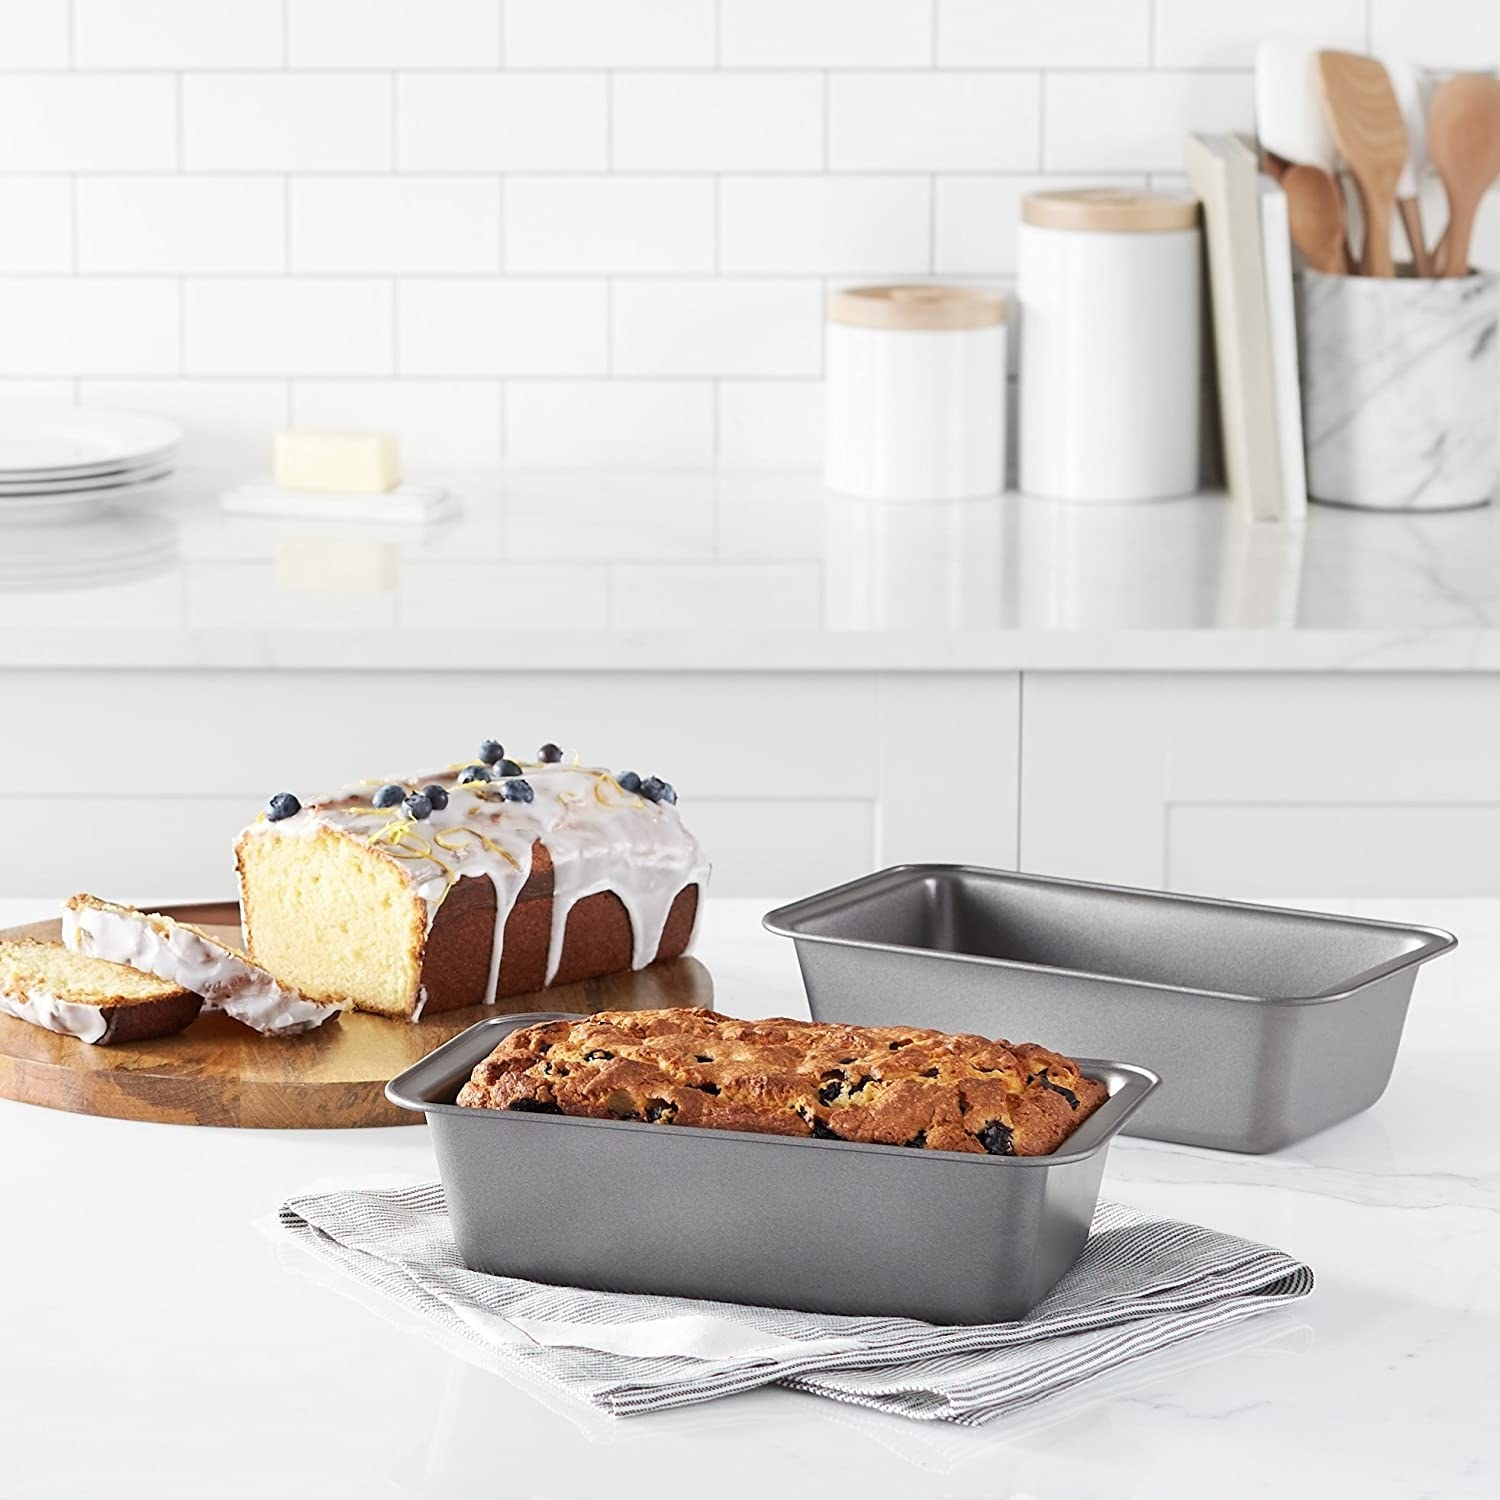 A set of baking trays with cakes in them next to a cake kept on a wooden board